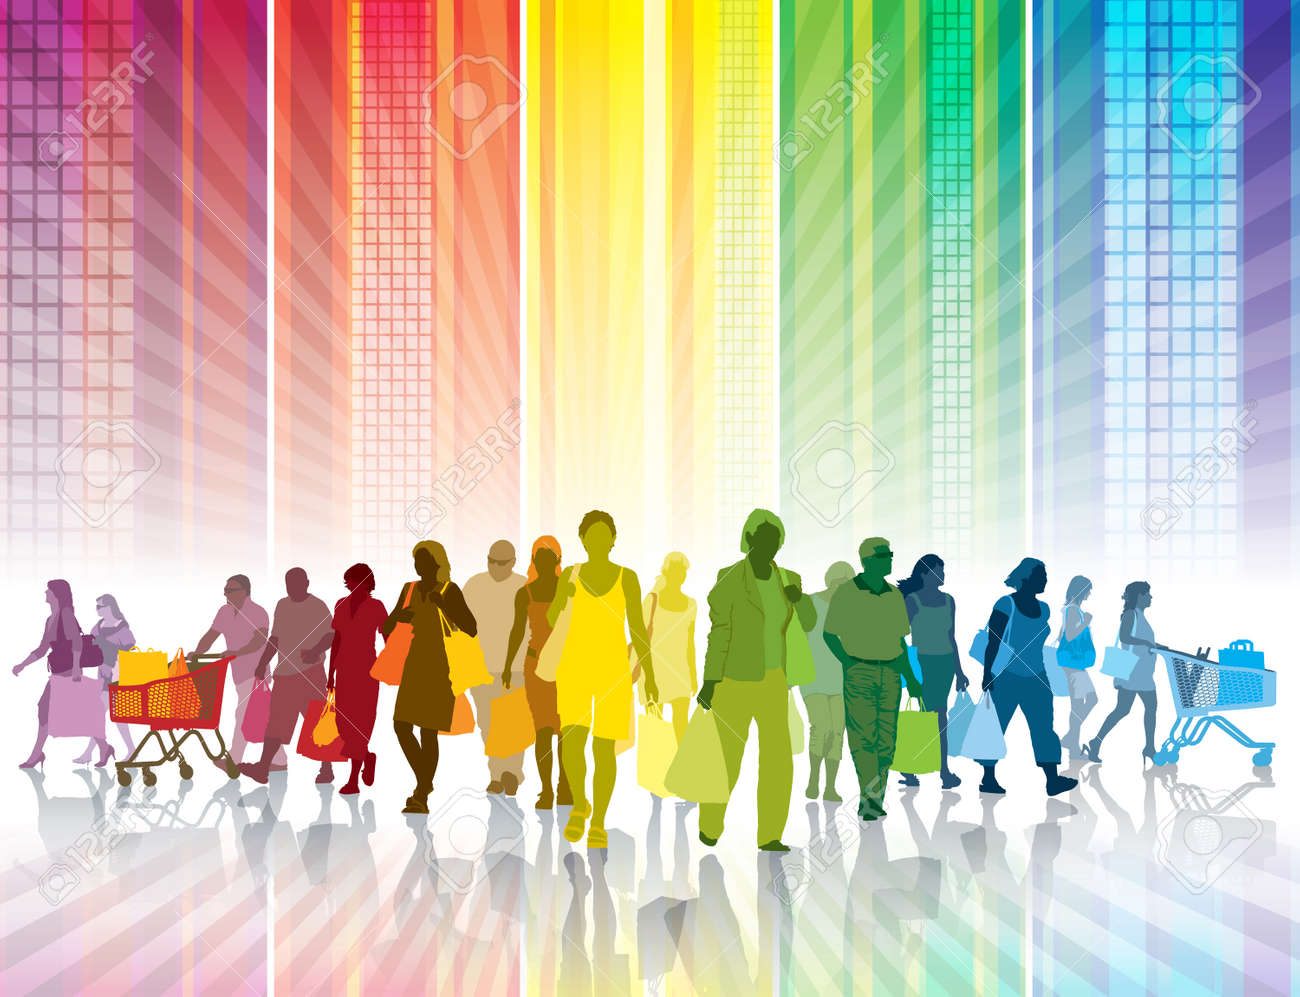 Crowd of shopping people in a colorful city Standard-Bild - 32558548